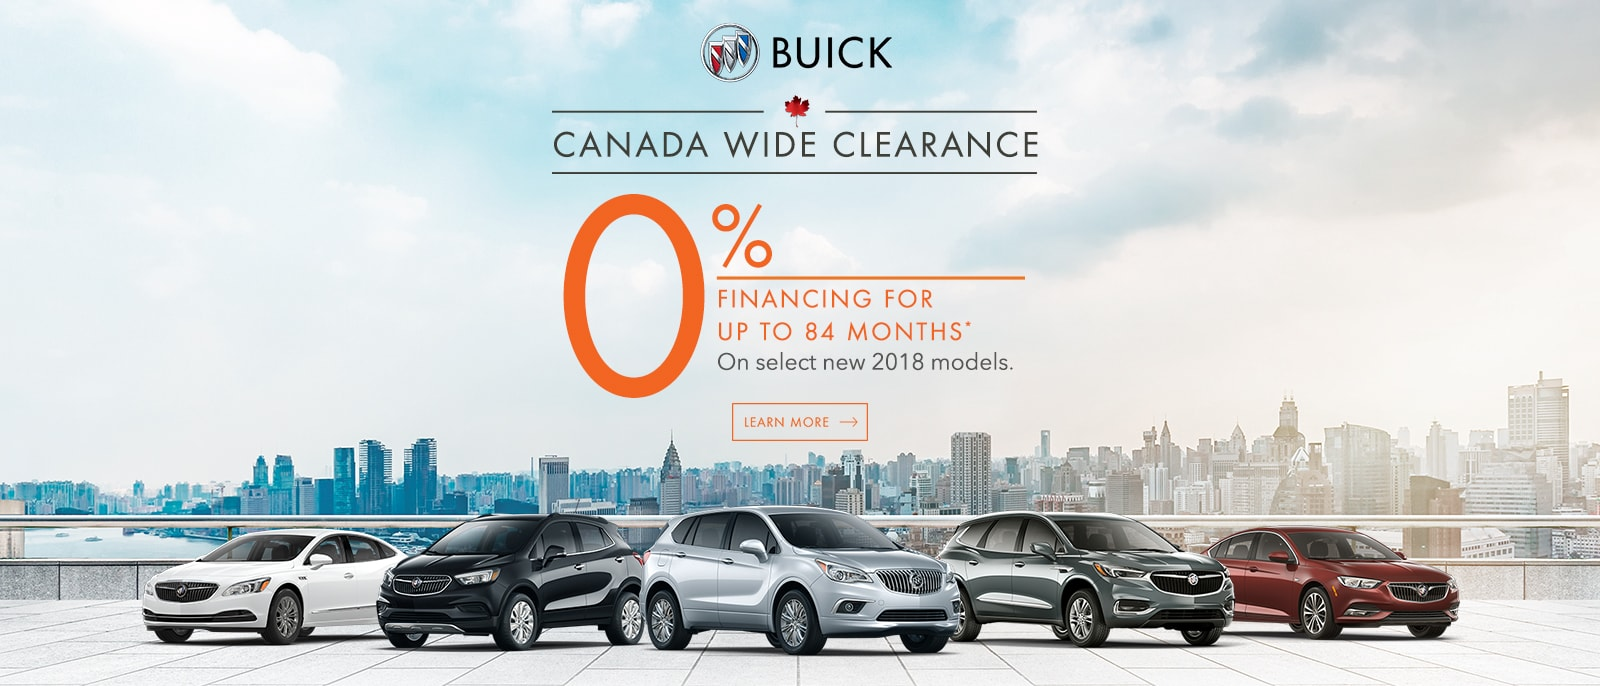 Canada Wide Clearance Cash 0% Financing up to 84 Months Buick Encore Enclave Envision Regal Sportback Ajax VanDusen Durham Region 1600x686-min